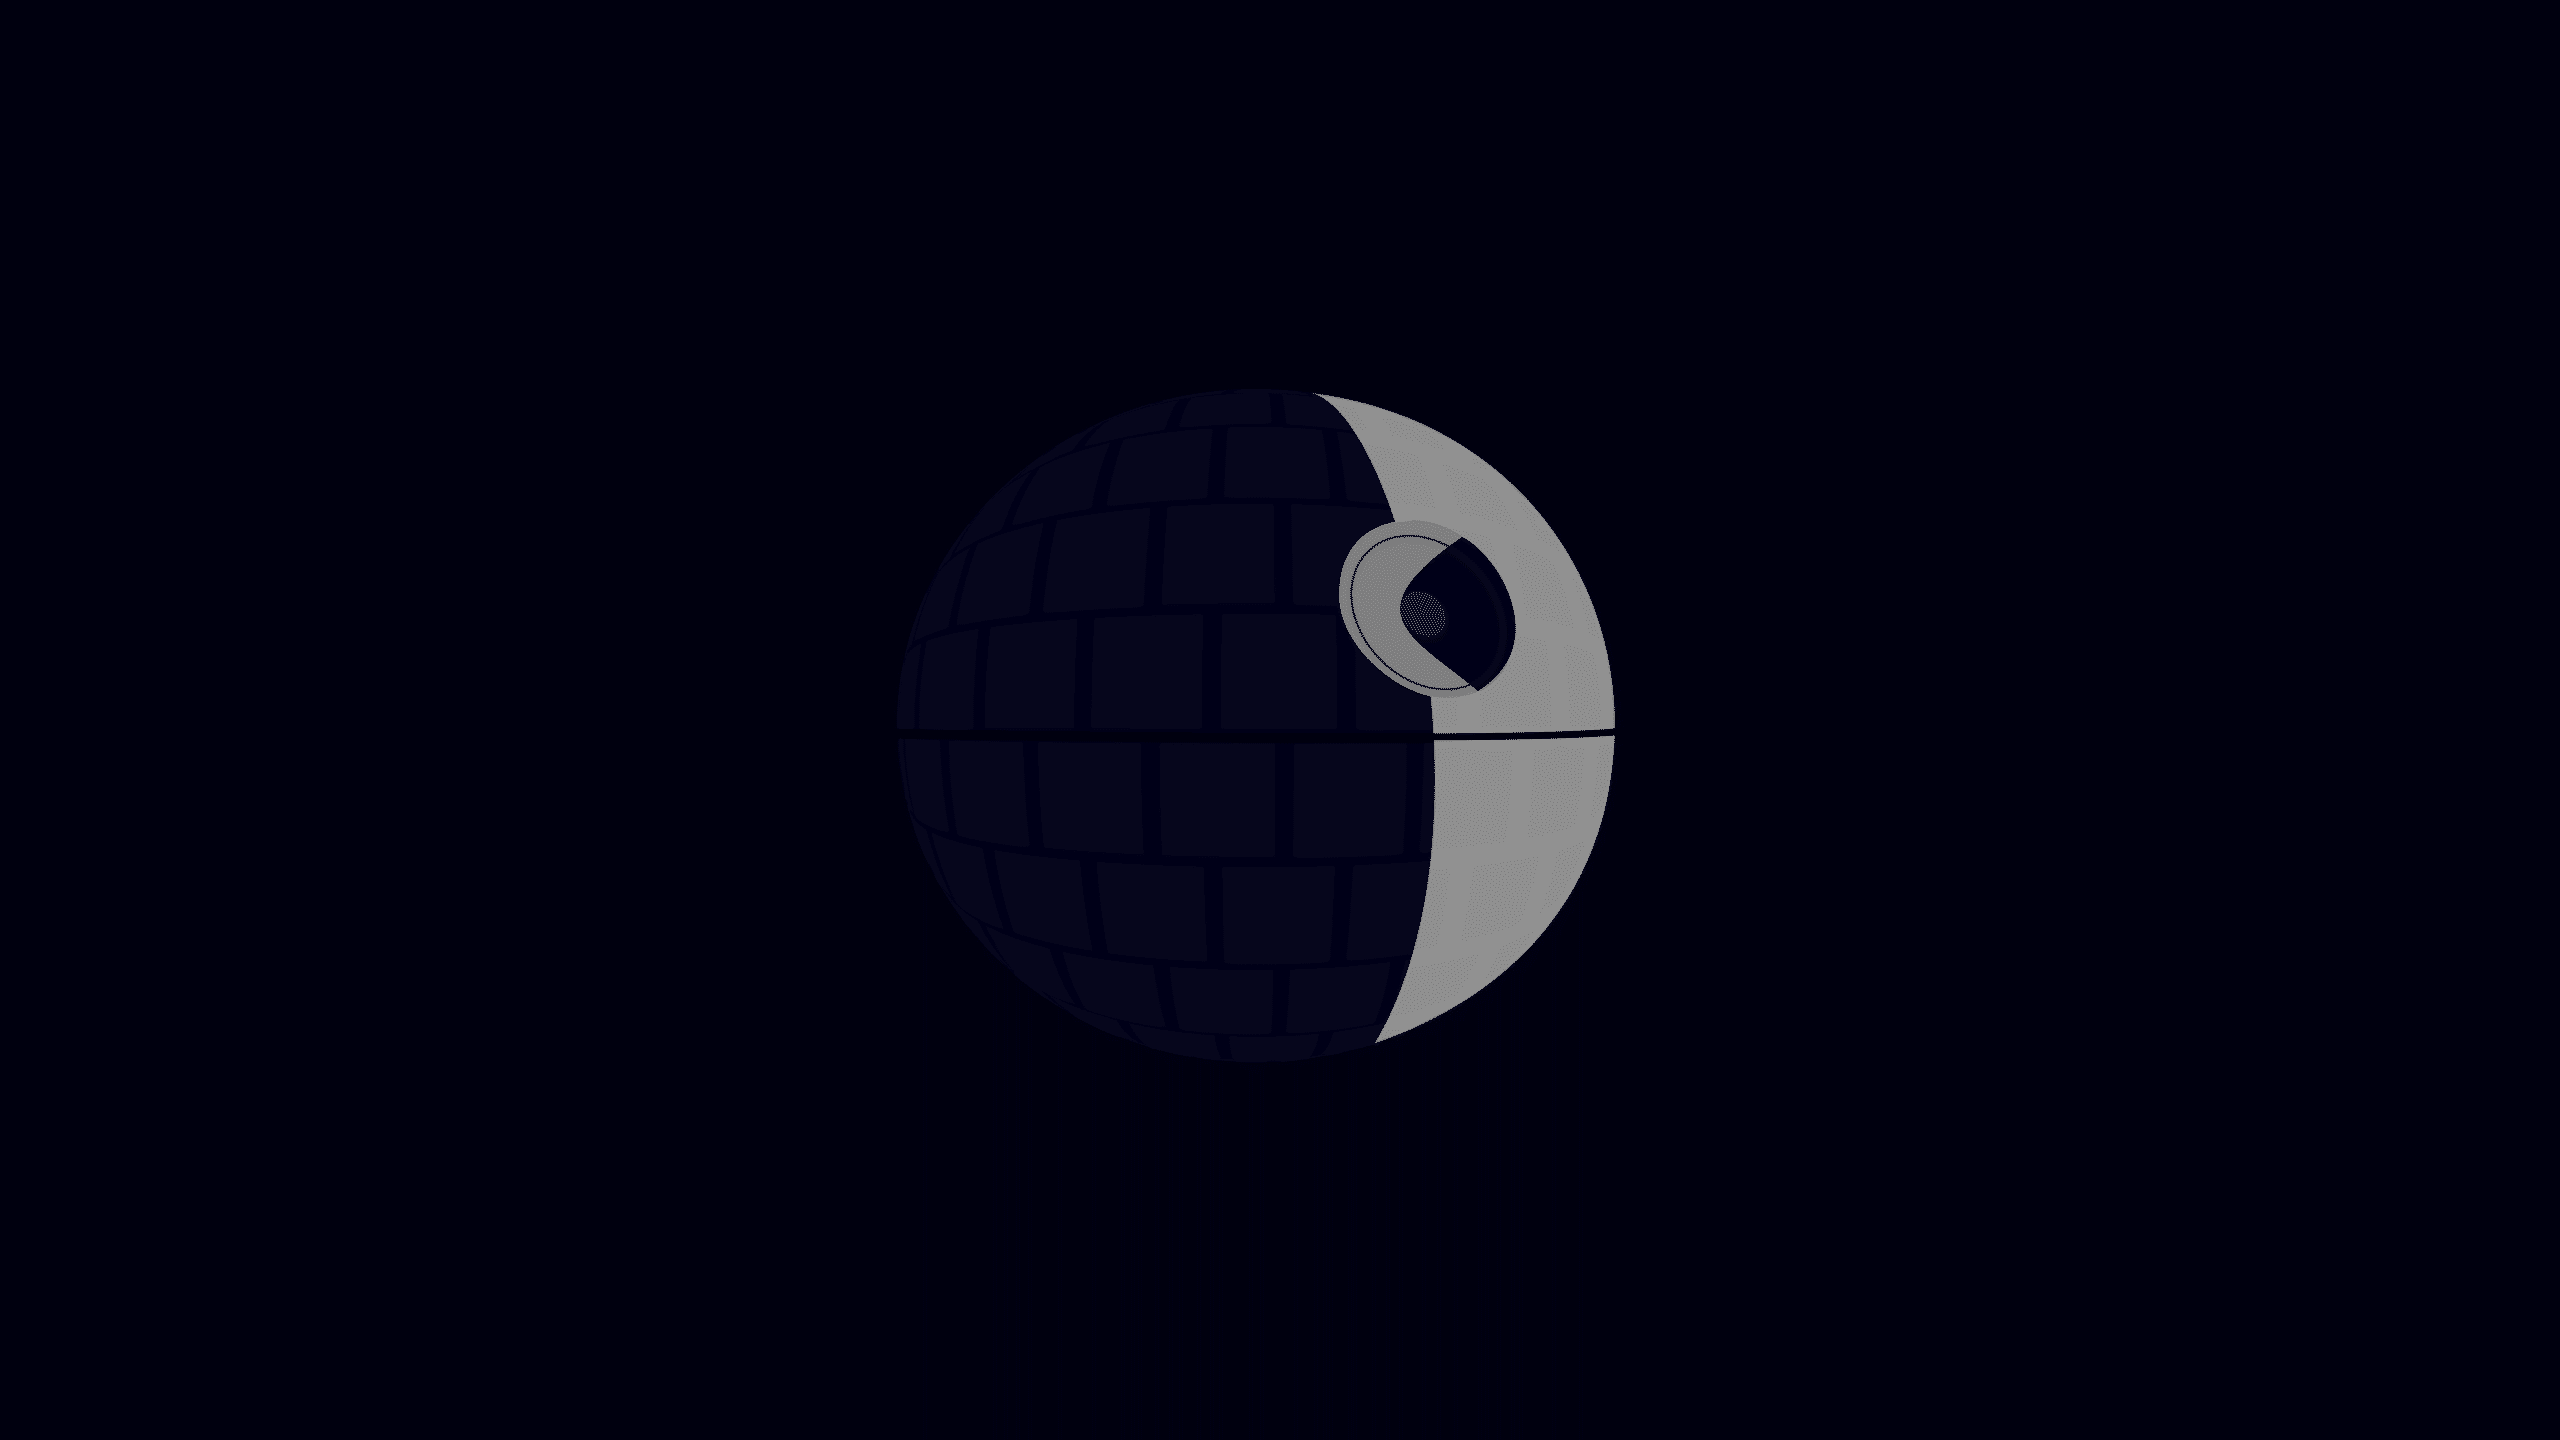 2560x1440_Star%20Wars_%20Death%20Star.png